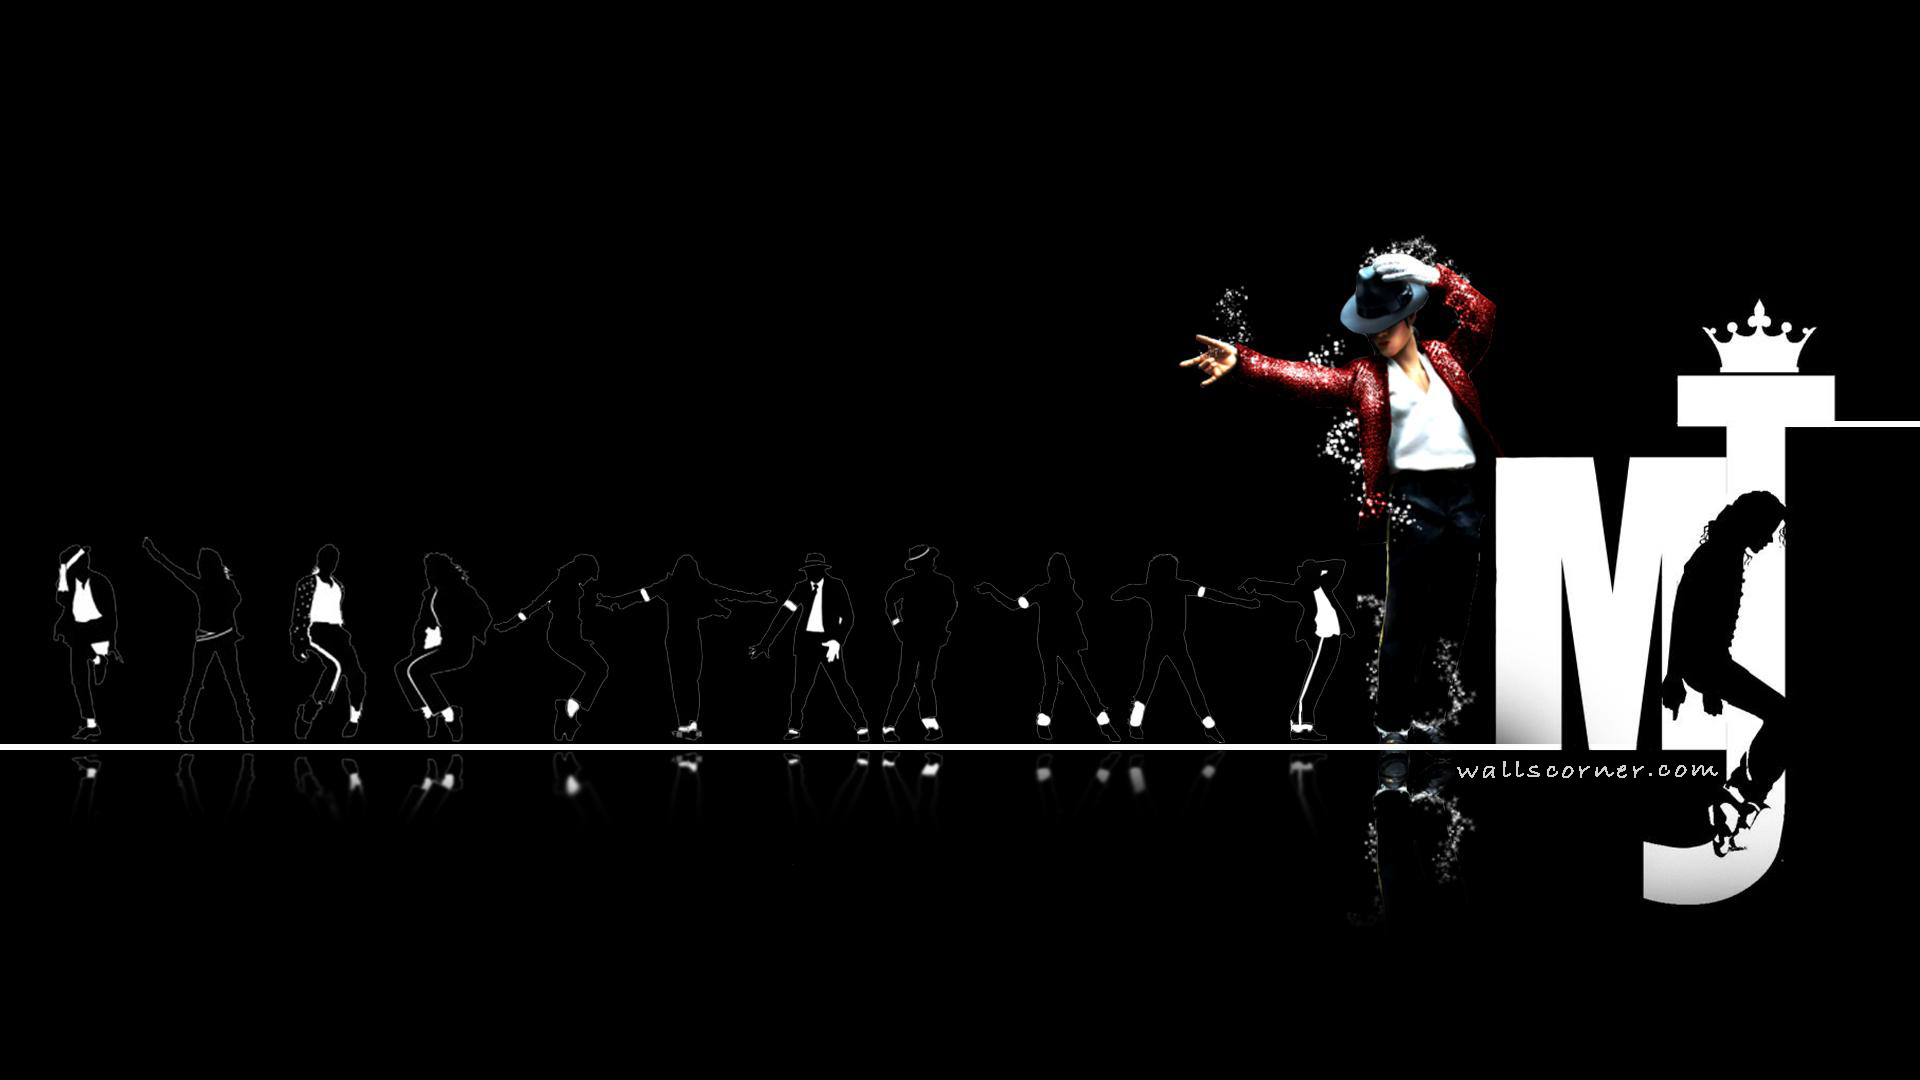 fonds d'écran moonwalk : tous les wallpapers moonwalk